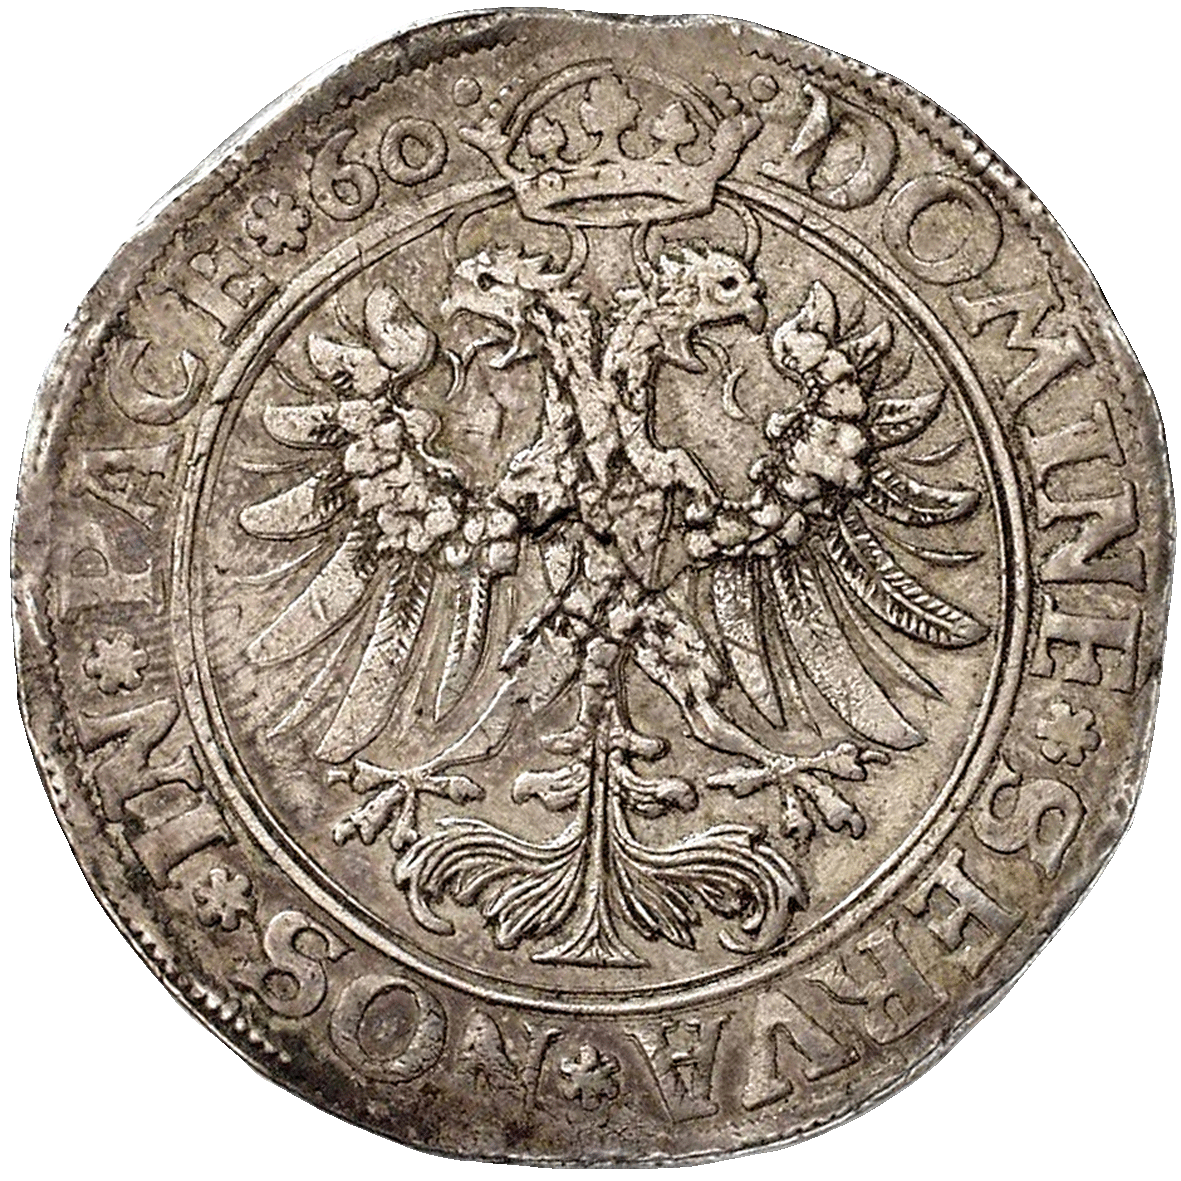 Holy Roman Empire, City of Zurich, Taler 1560 (reverse)